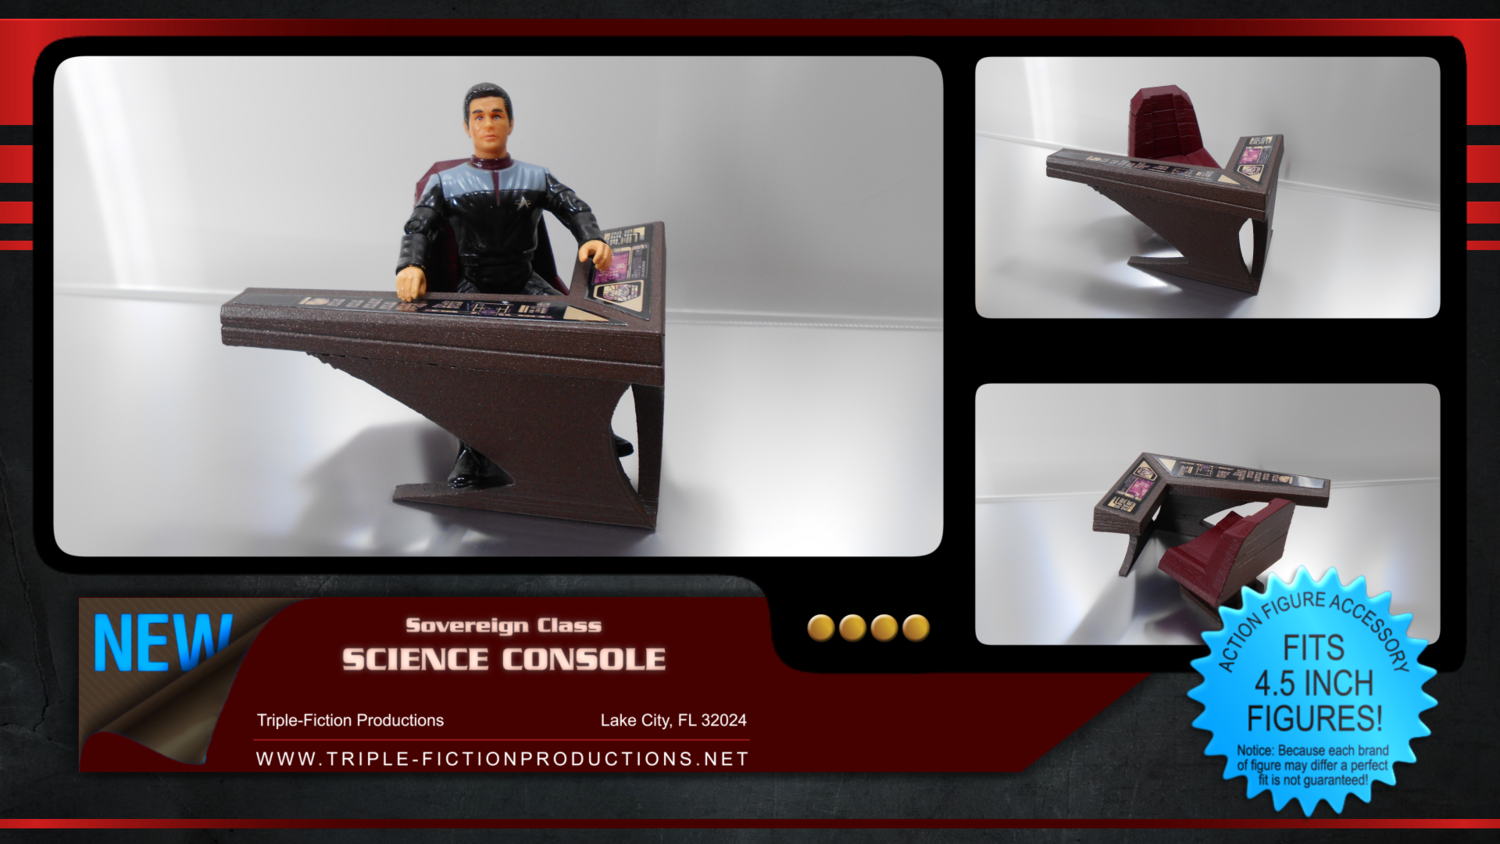 Sovereign Class Science Console